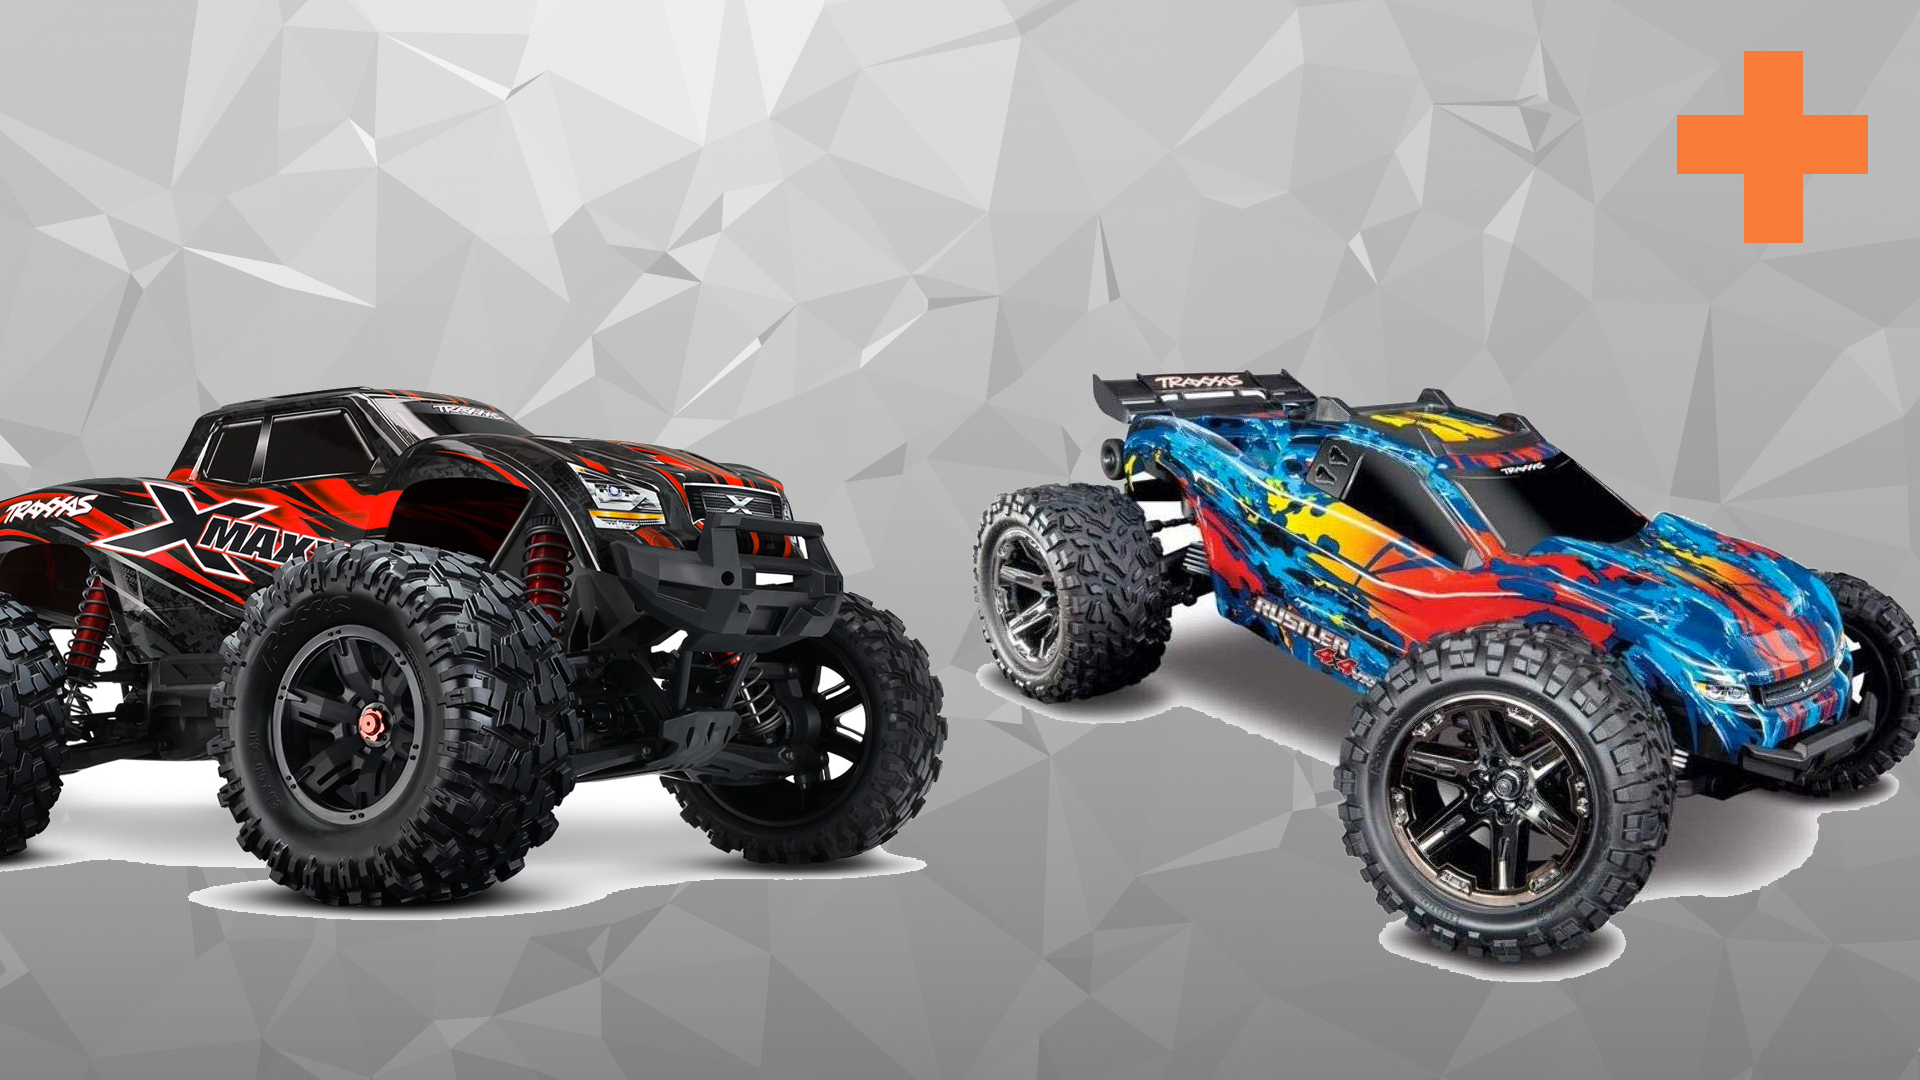 Best Rc Cars 2021 The best RC cars you can buy in 2019 | GamesRadar+